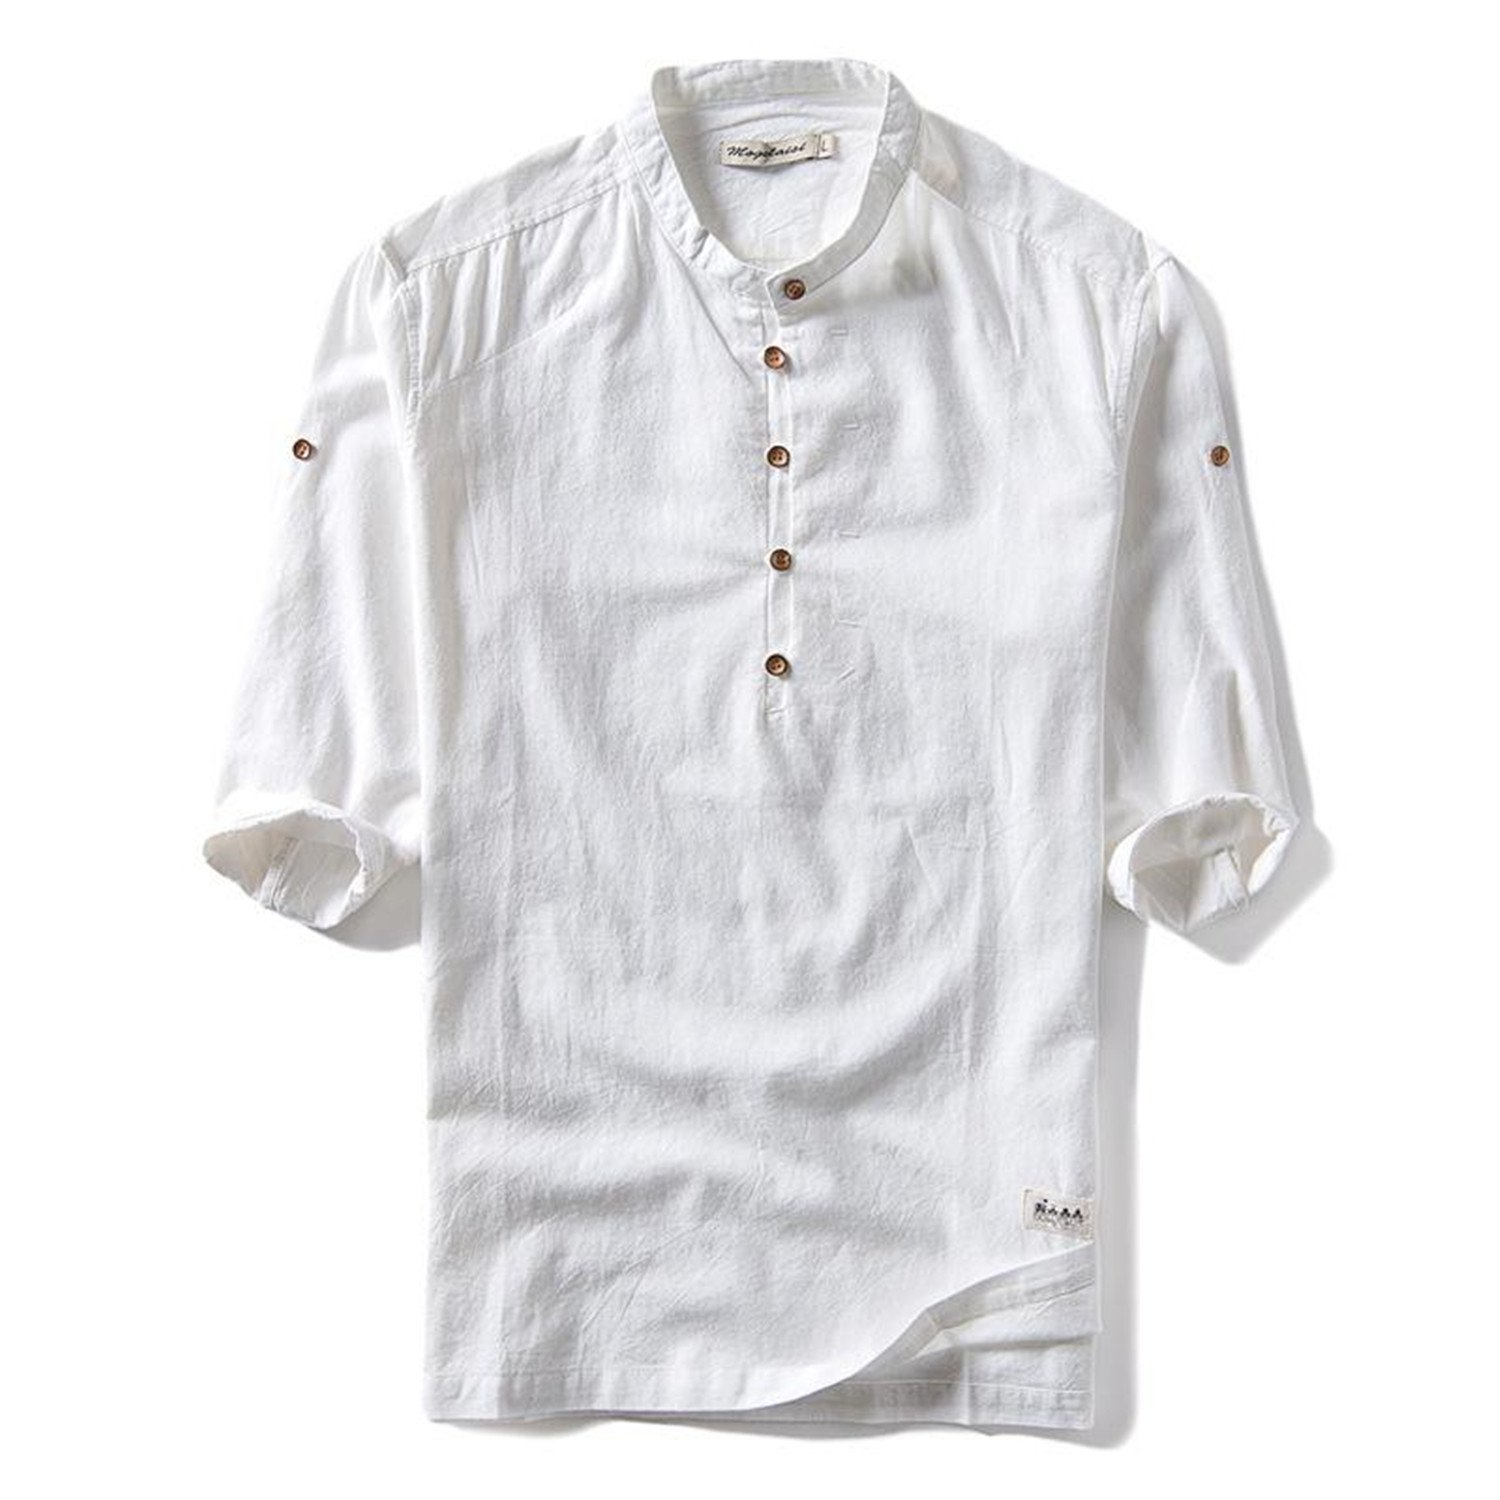 Sonjer 2018 New Trend Fashion Summer Solid Color Shirt Men Stand